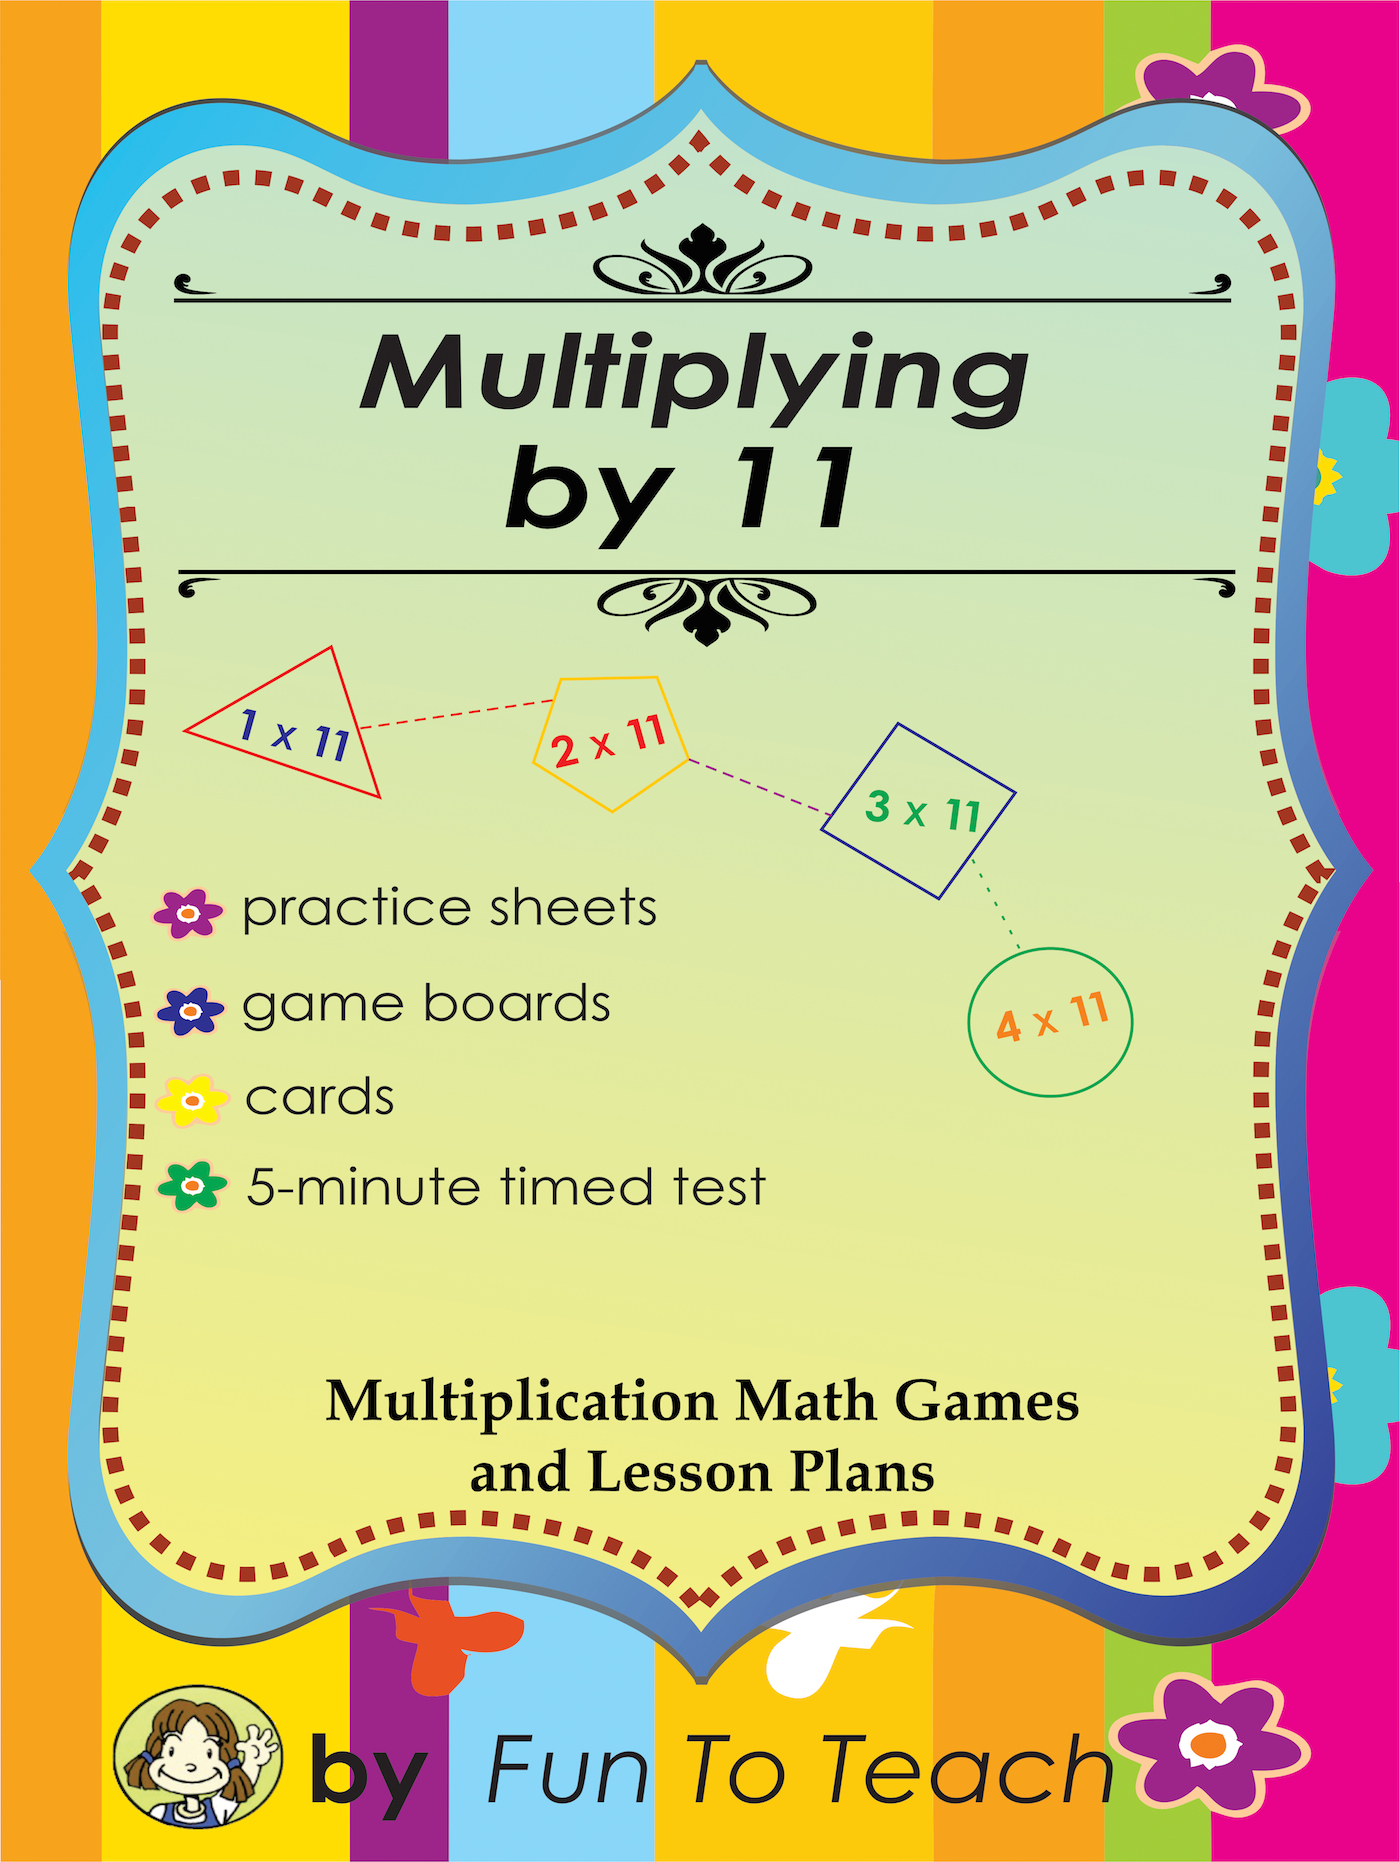 Multiplying By 11 Math Games Activities And Lesson